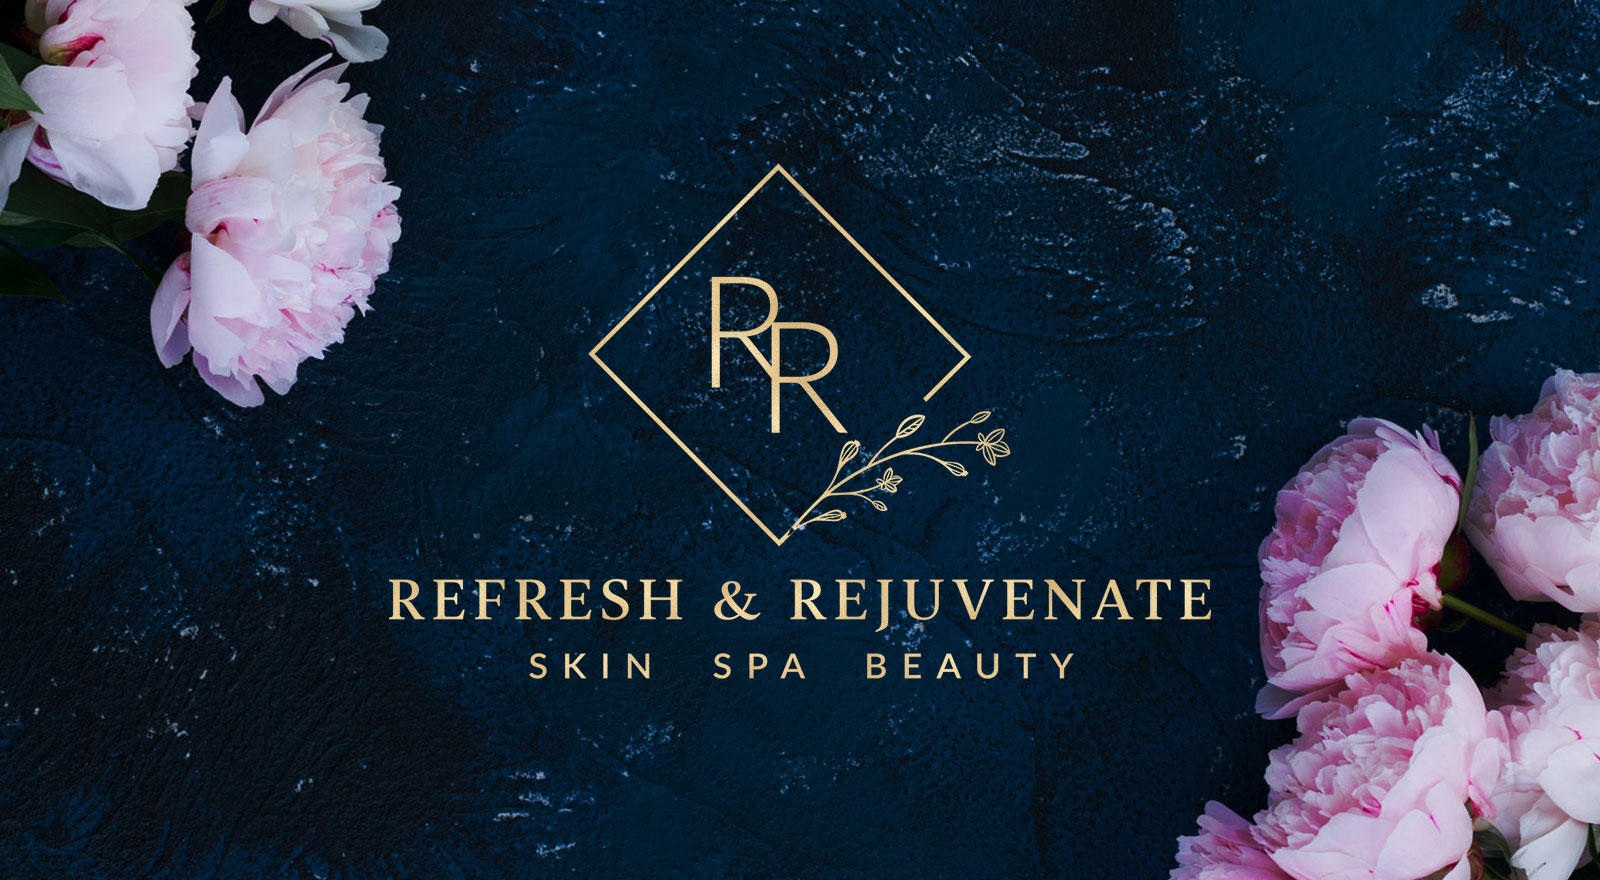 Logo redesign for Refresh & Rejuvenate Skin Spa Beauty